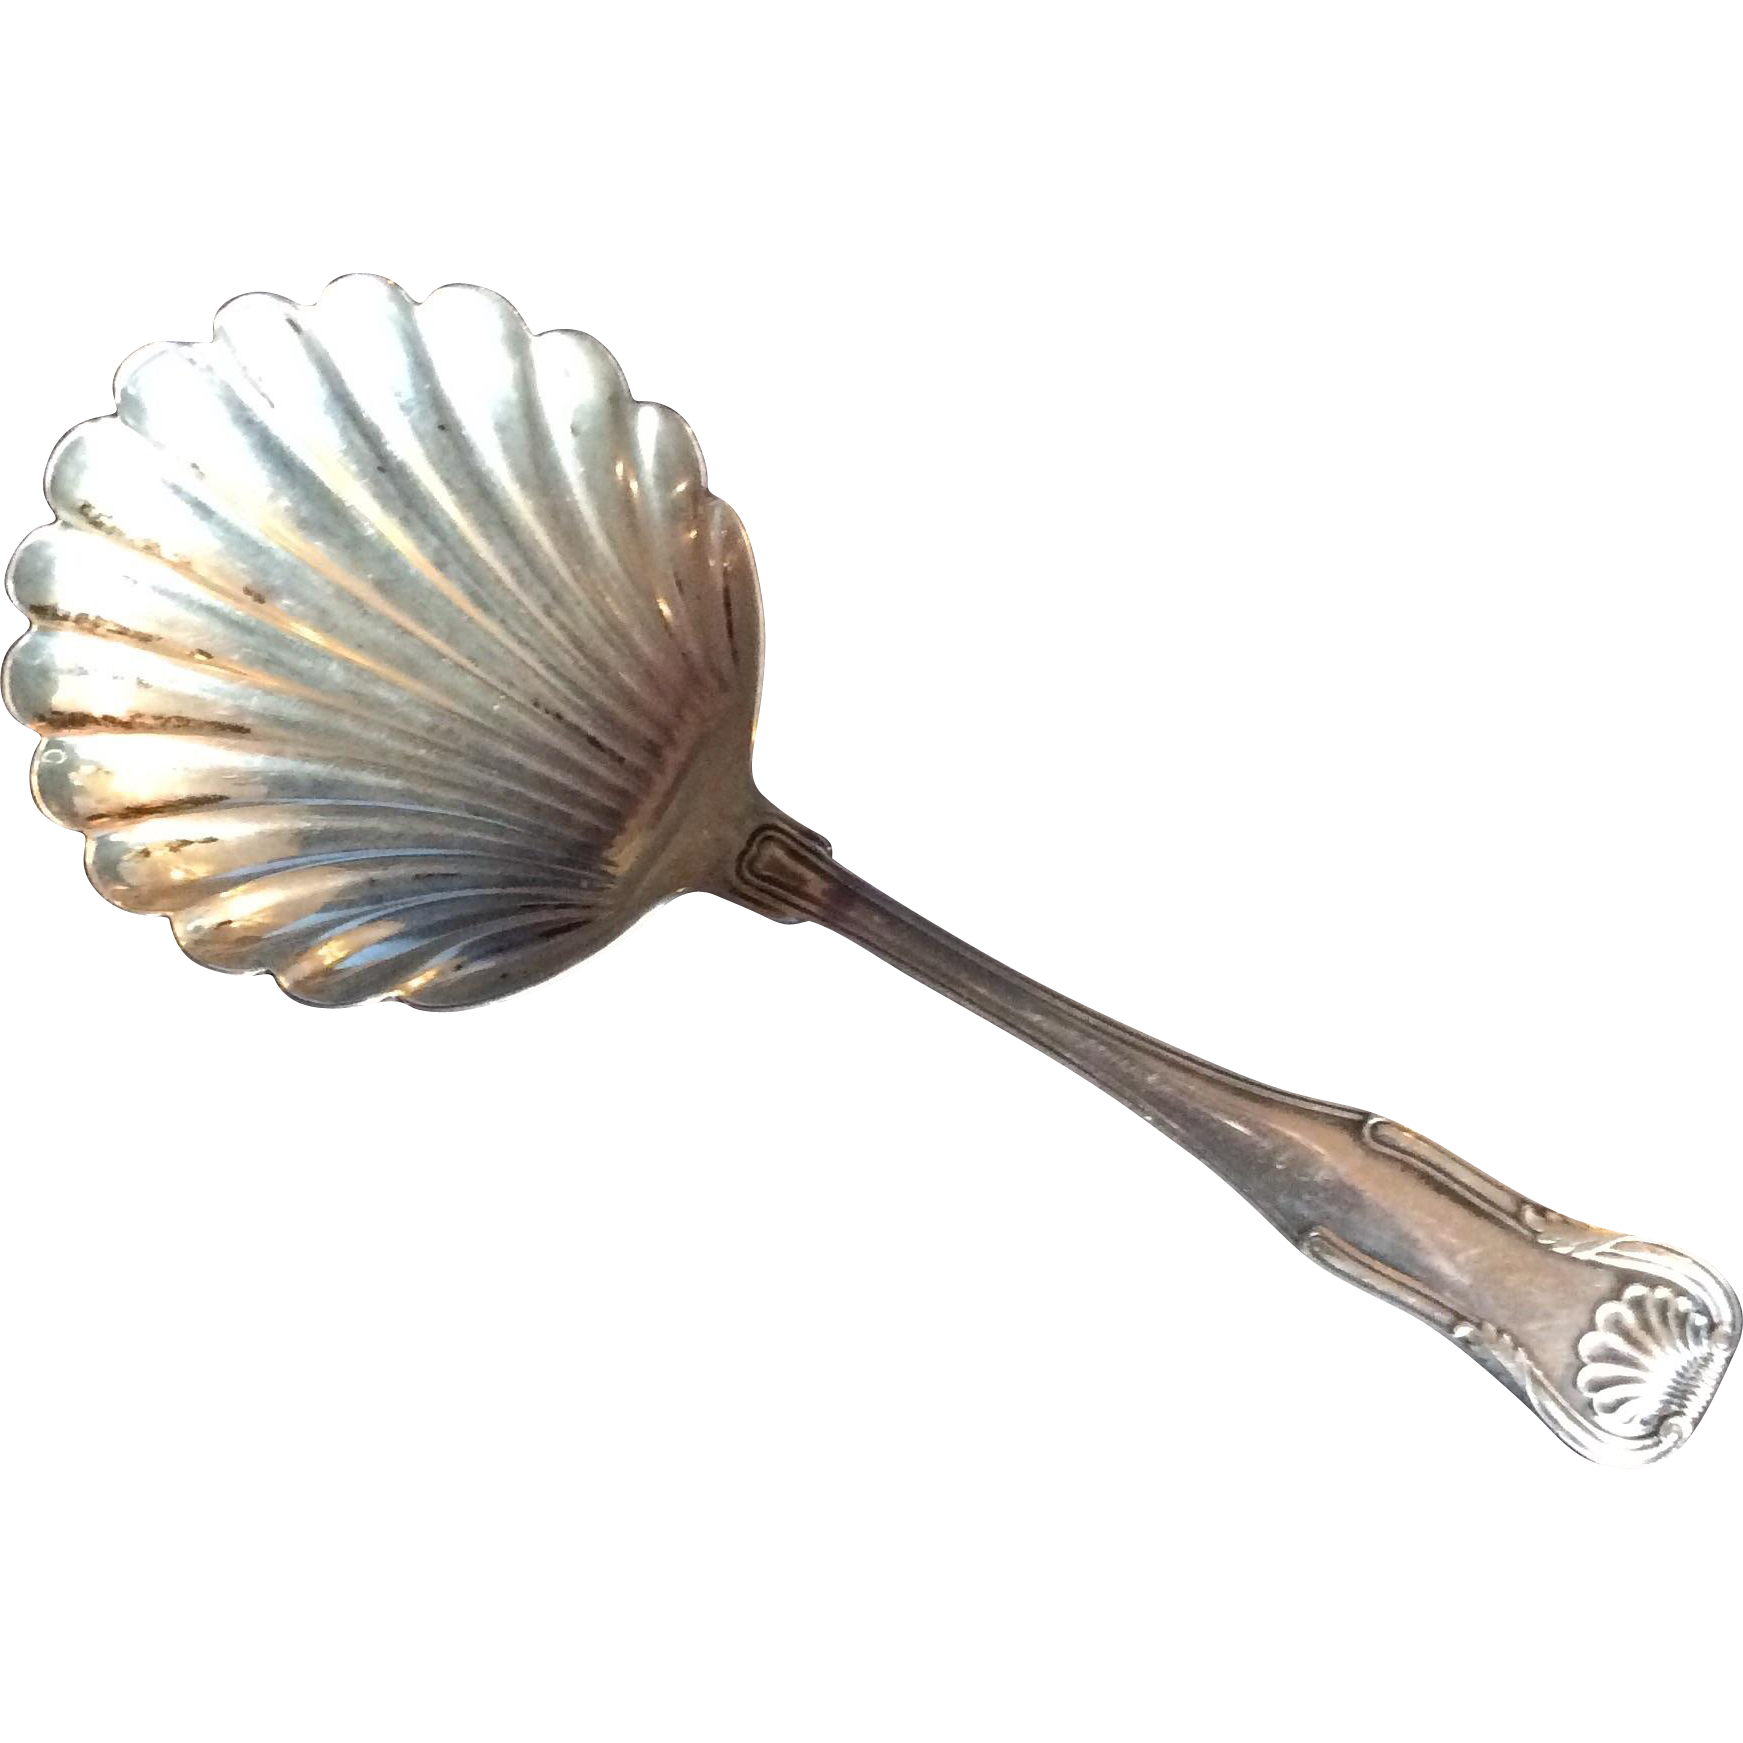 King by Kirk Sterling silver Bon Bon or Nut Spoon with Shell Shaped Bowl